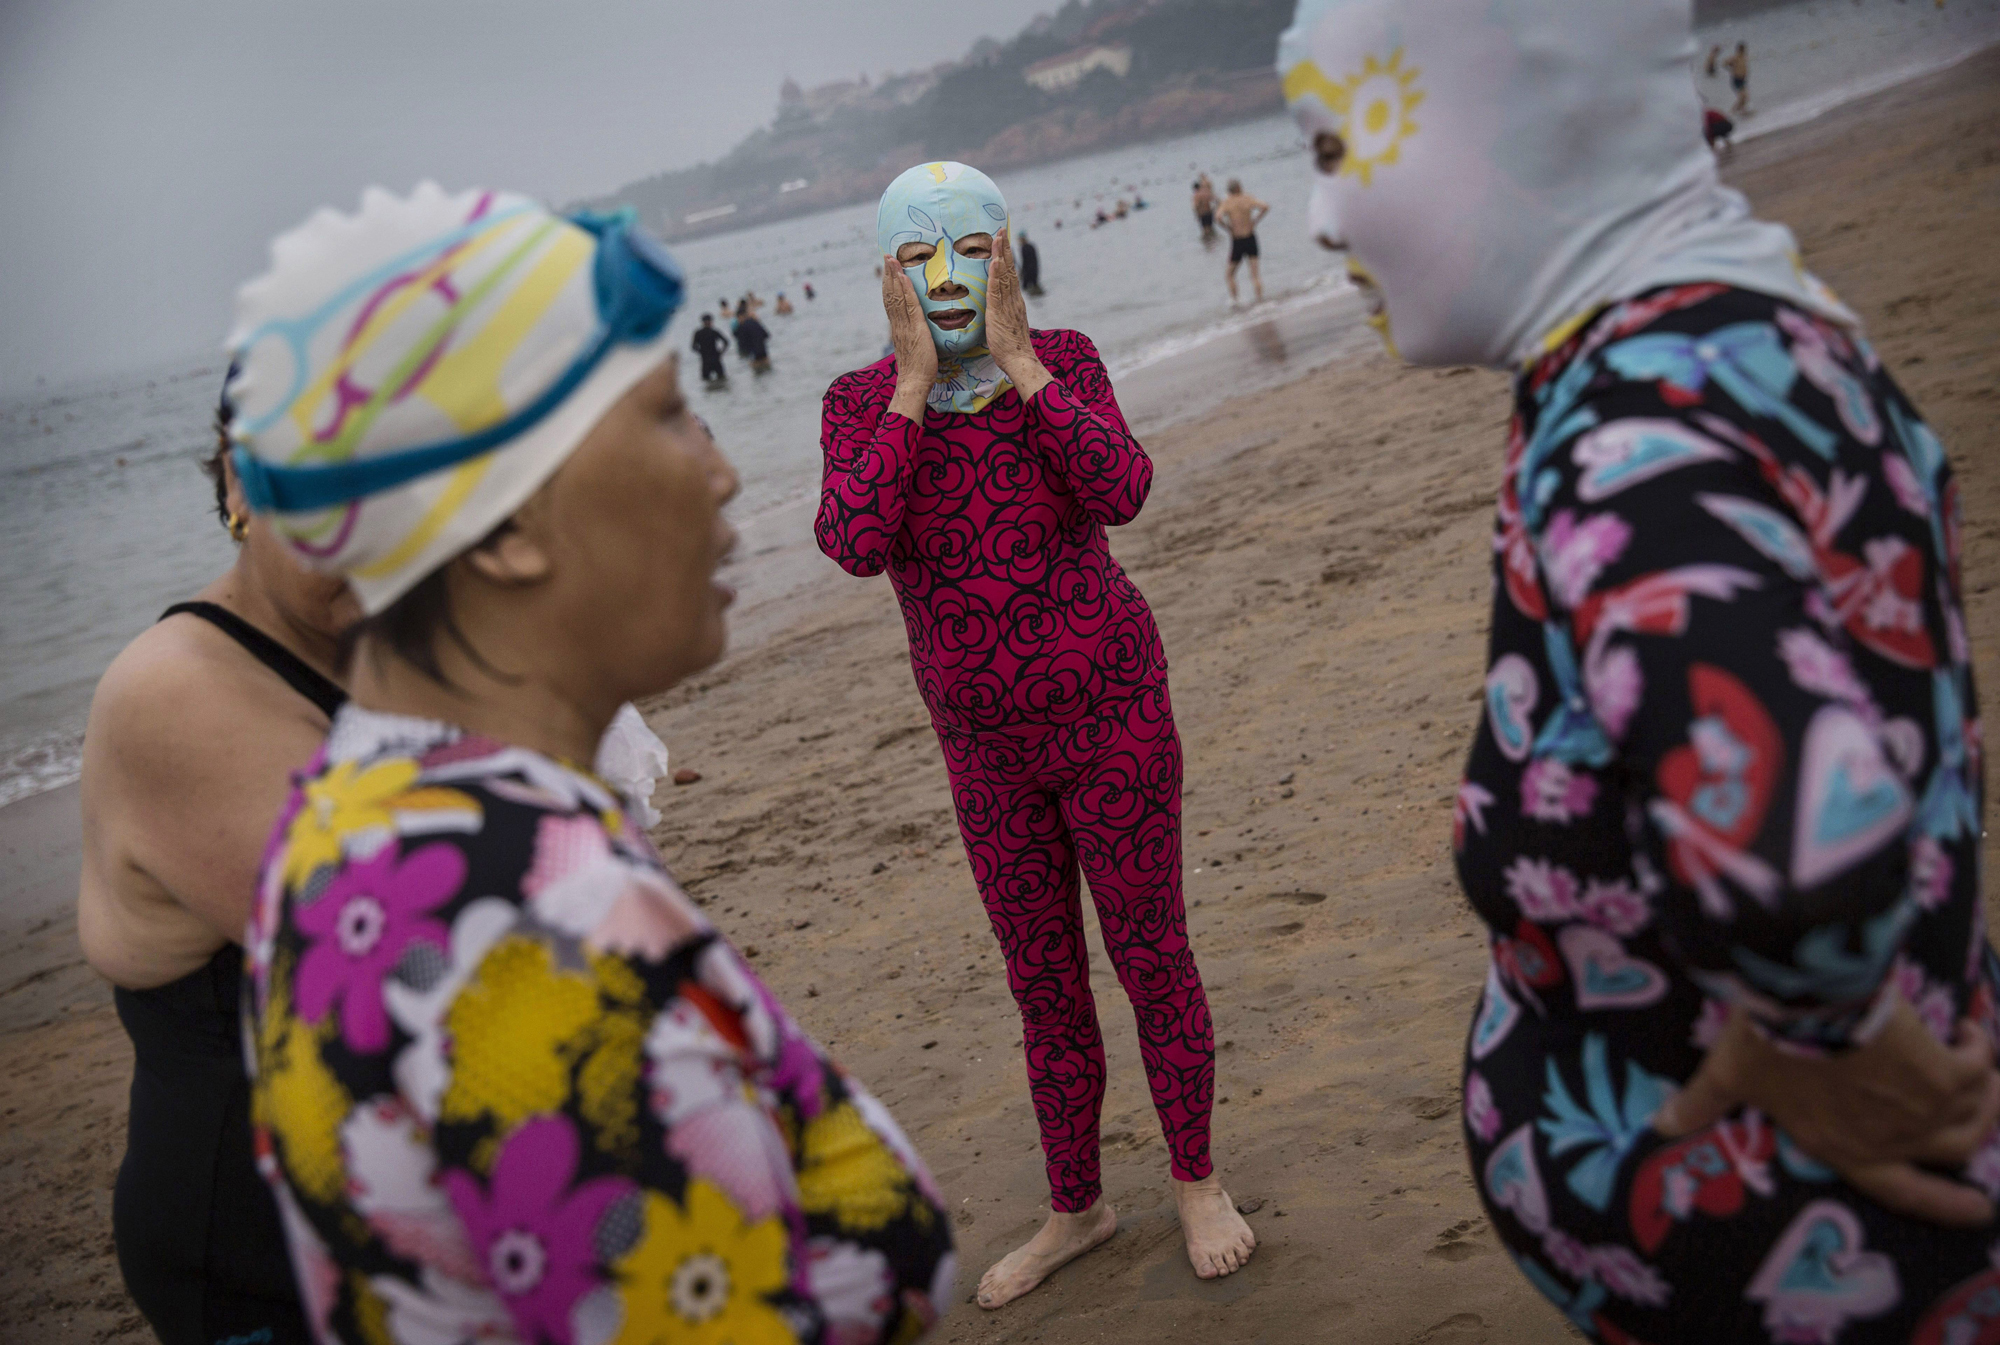 A woman adjust her facekini as she talks with others as they stand on the beach on Aug. 21, 2014, on the Yellow Sea in Qingdao.